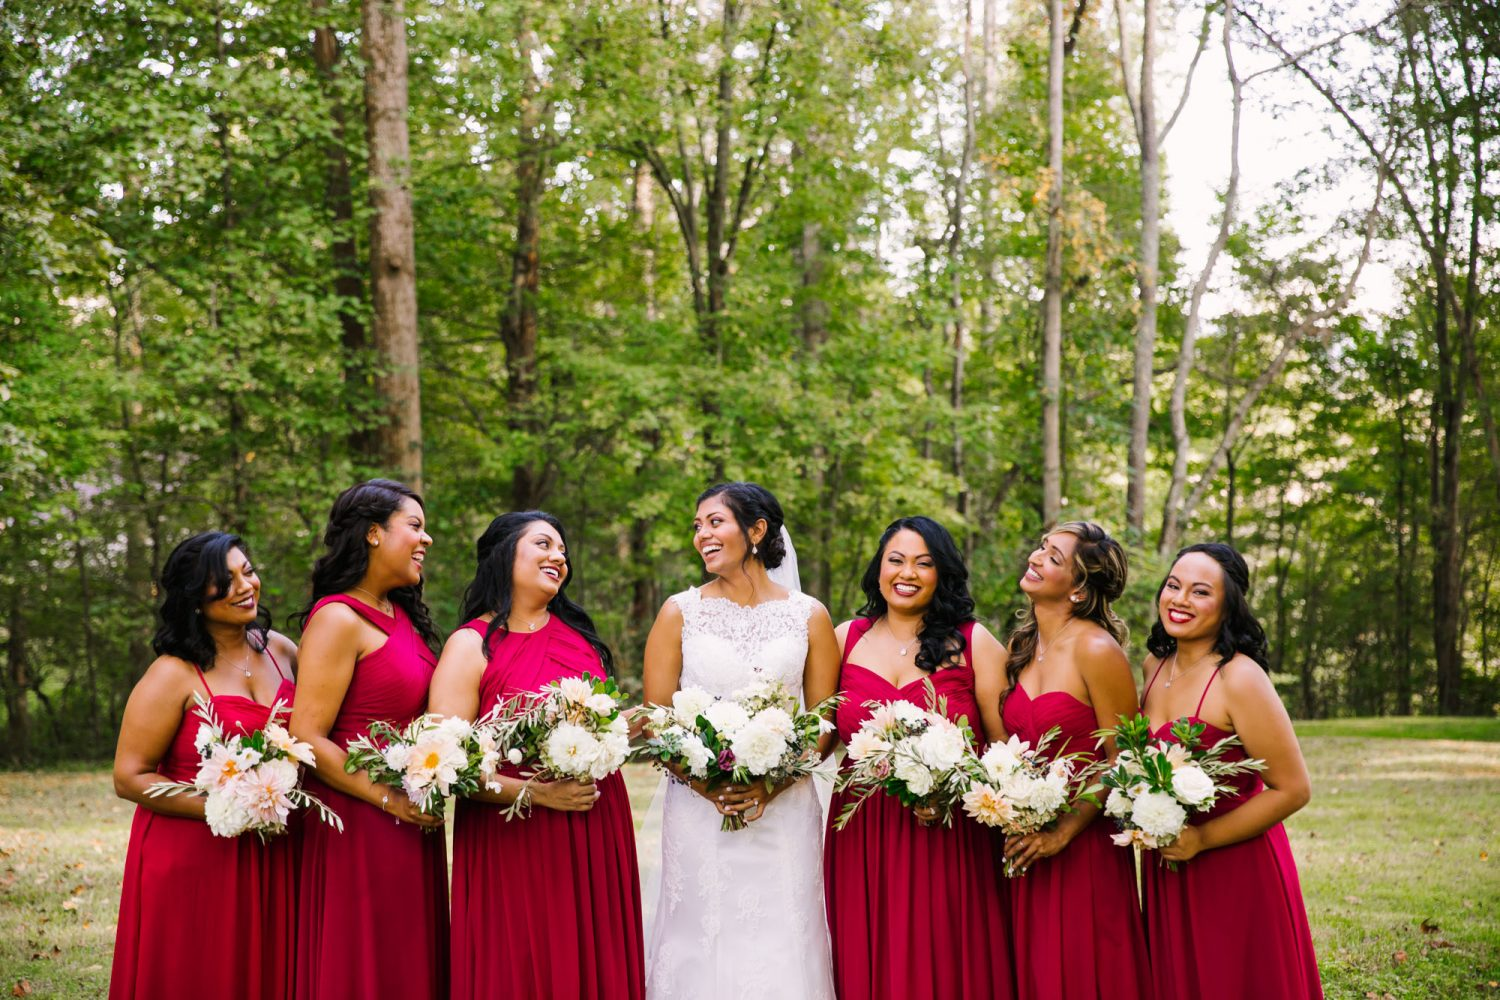 Waynesville NC Wedding Photography | Bridesmaids Portrait Laughing